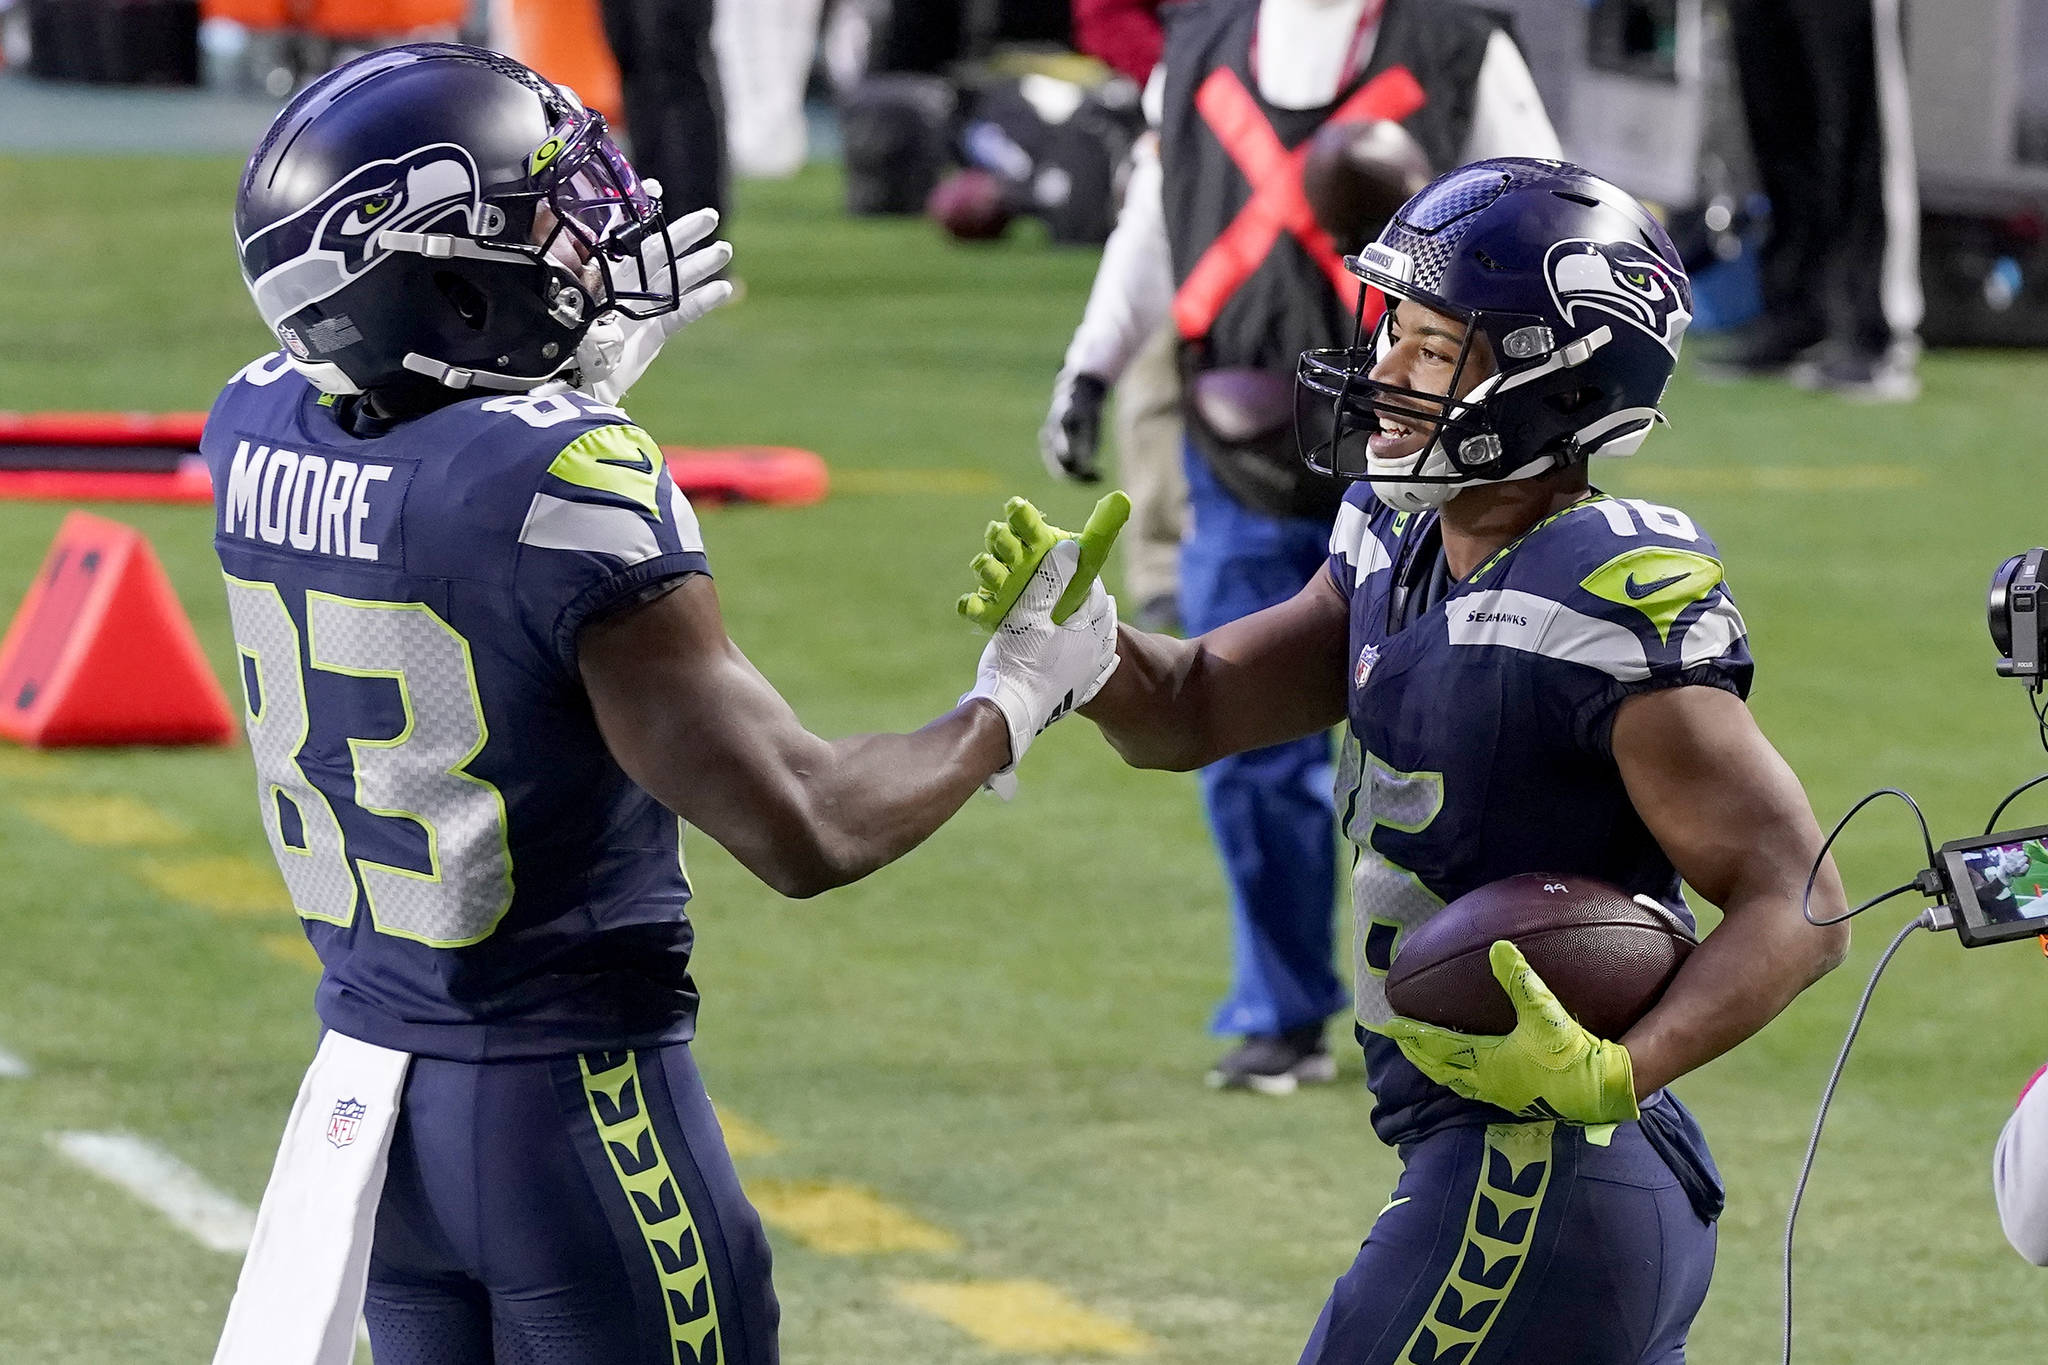 Seattle Seahawks wide receiver Tyler Lockett (16) celebrates with David Moore (83) following Lockett's fourth-quarter touchdown against the San Francisco 49ers Sunday in Glendale, Ariz. (AP Photo/Ross D. Franklin)